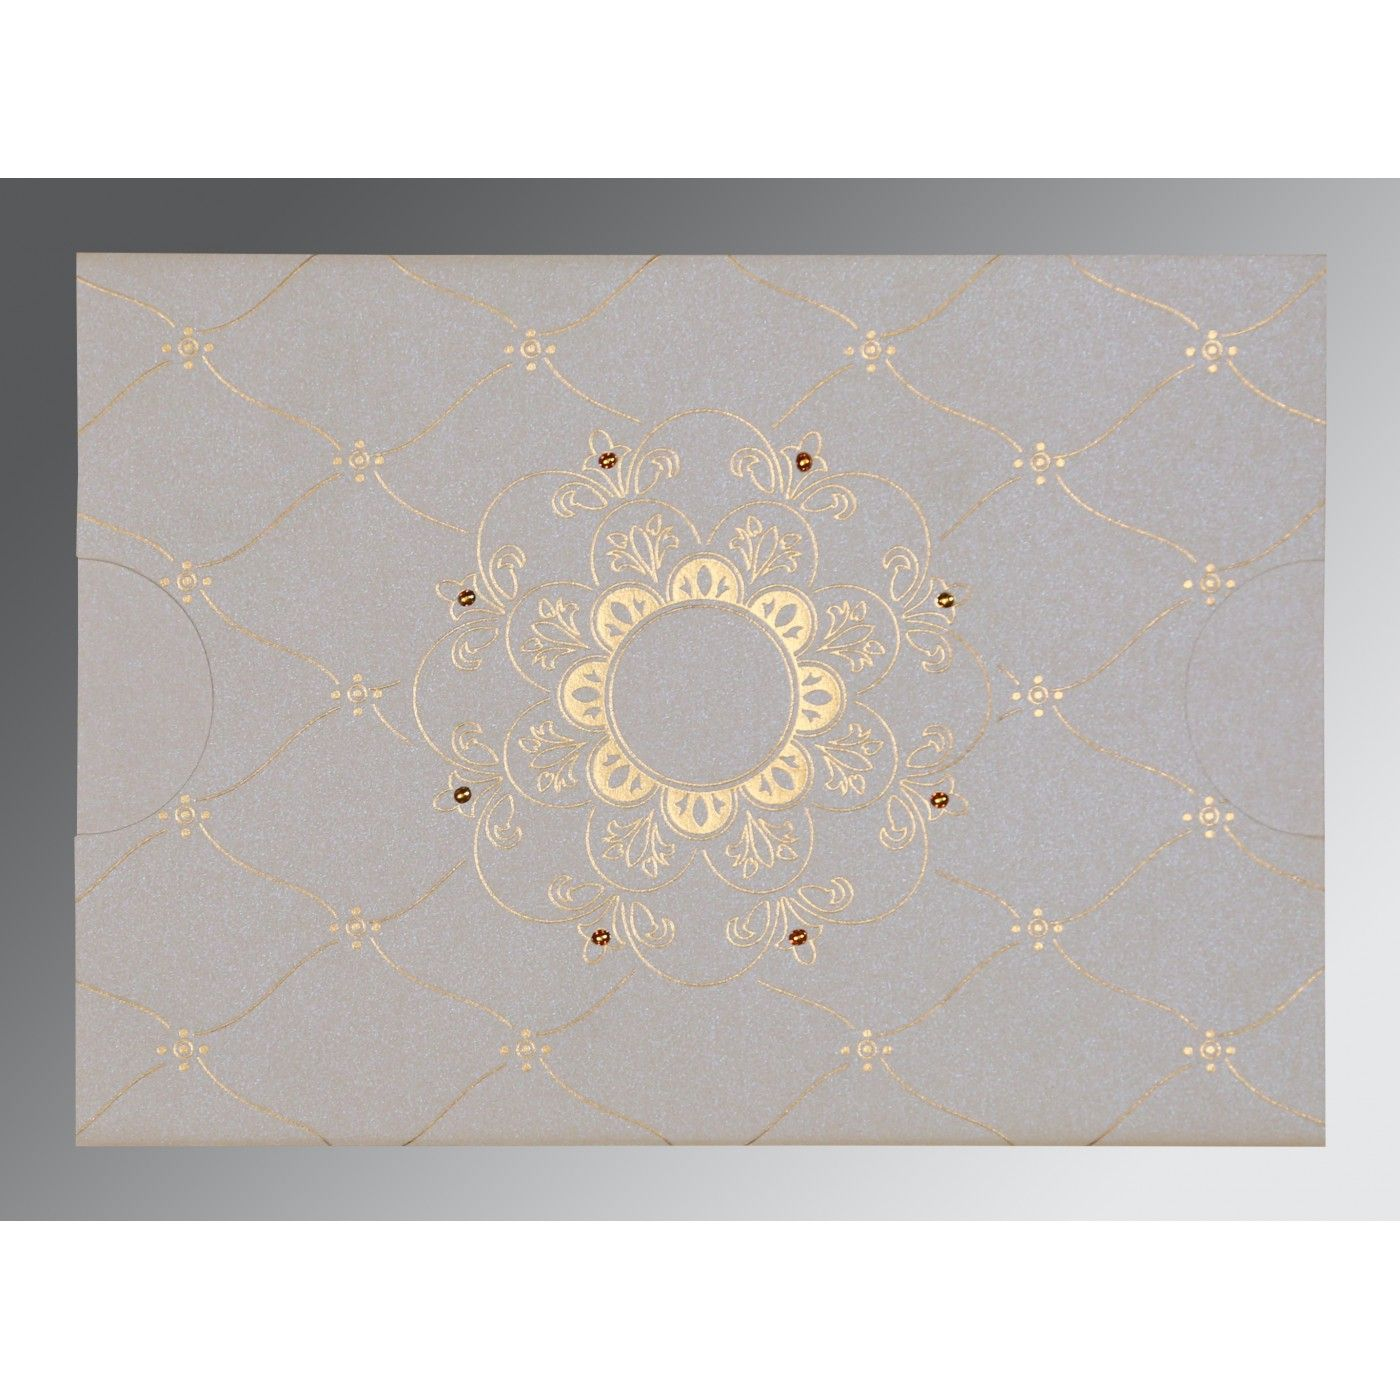 OFF-WHITE SHIMMERY FLORAL THEMED - SCREEN PRINTED WEDDING CARD : CRU-8227D - IndianWeddingCards